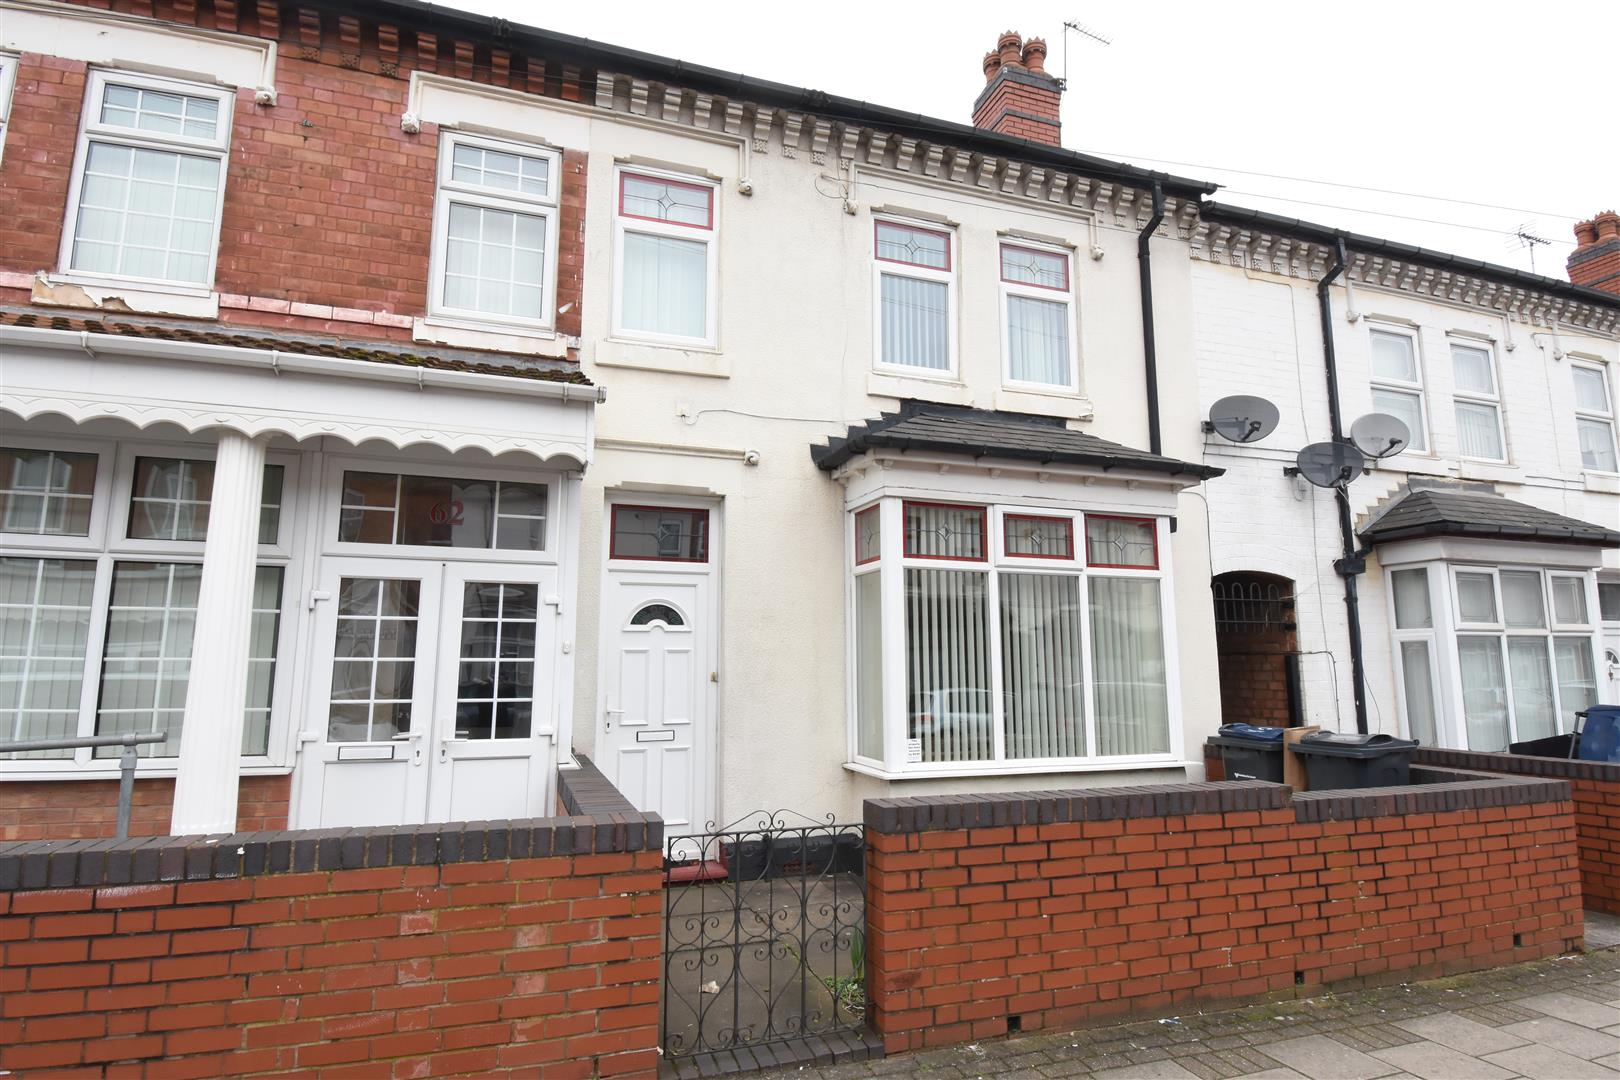 3 bed house for sale in Edmund Road, Alum Rock, Birmingham 1